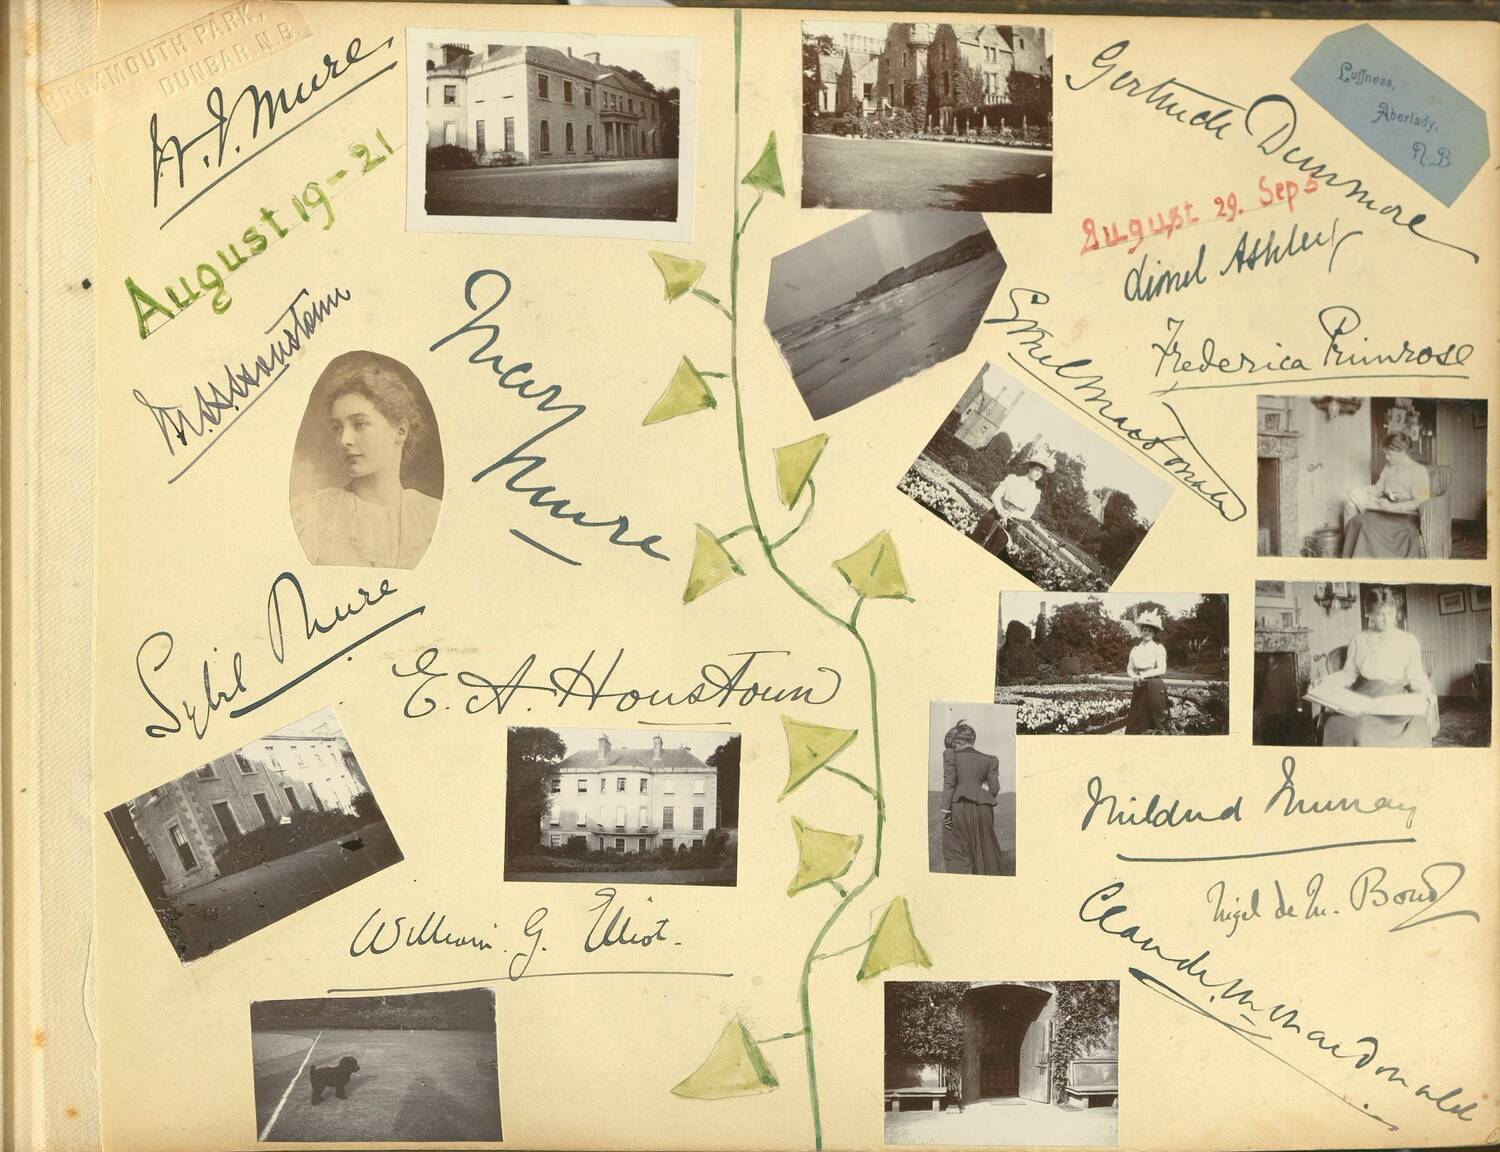 A page from a photo album, divided in half with a watercolour of ivy. There are 12 small photos and 12 signatures visible.